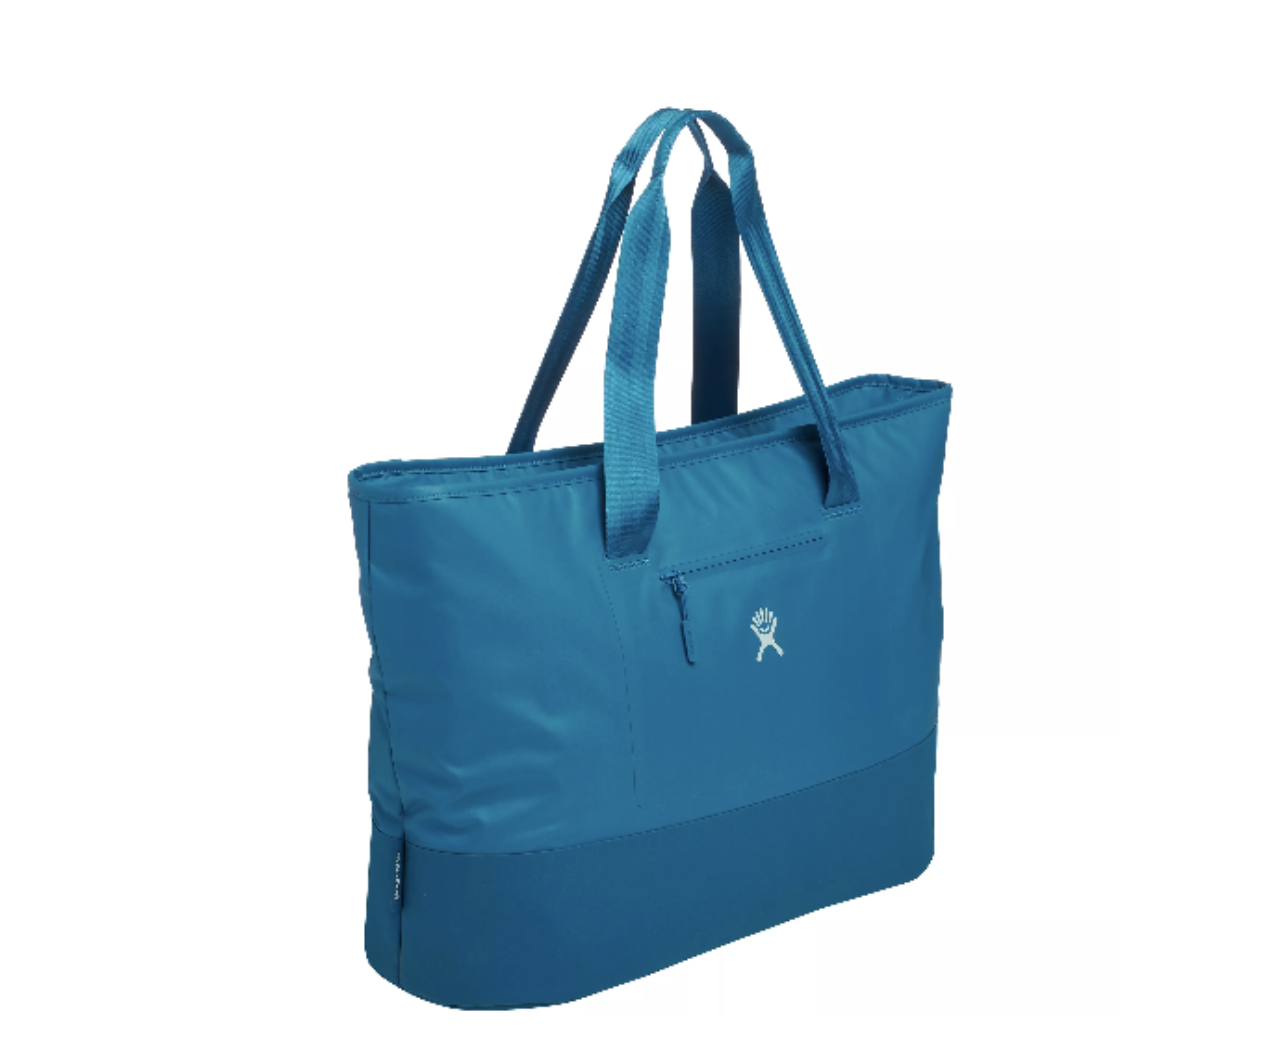 hydroflask cooler tote